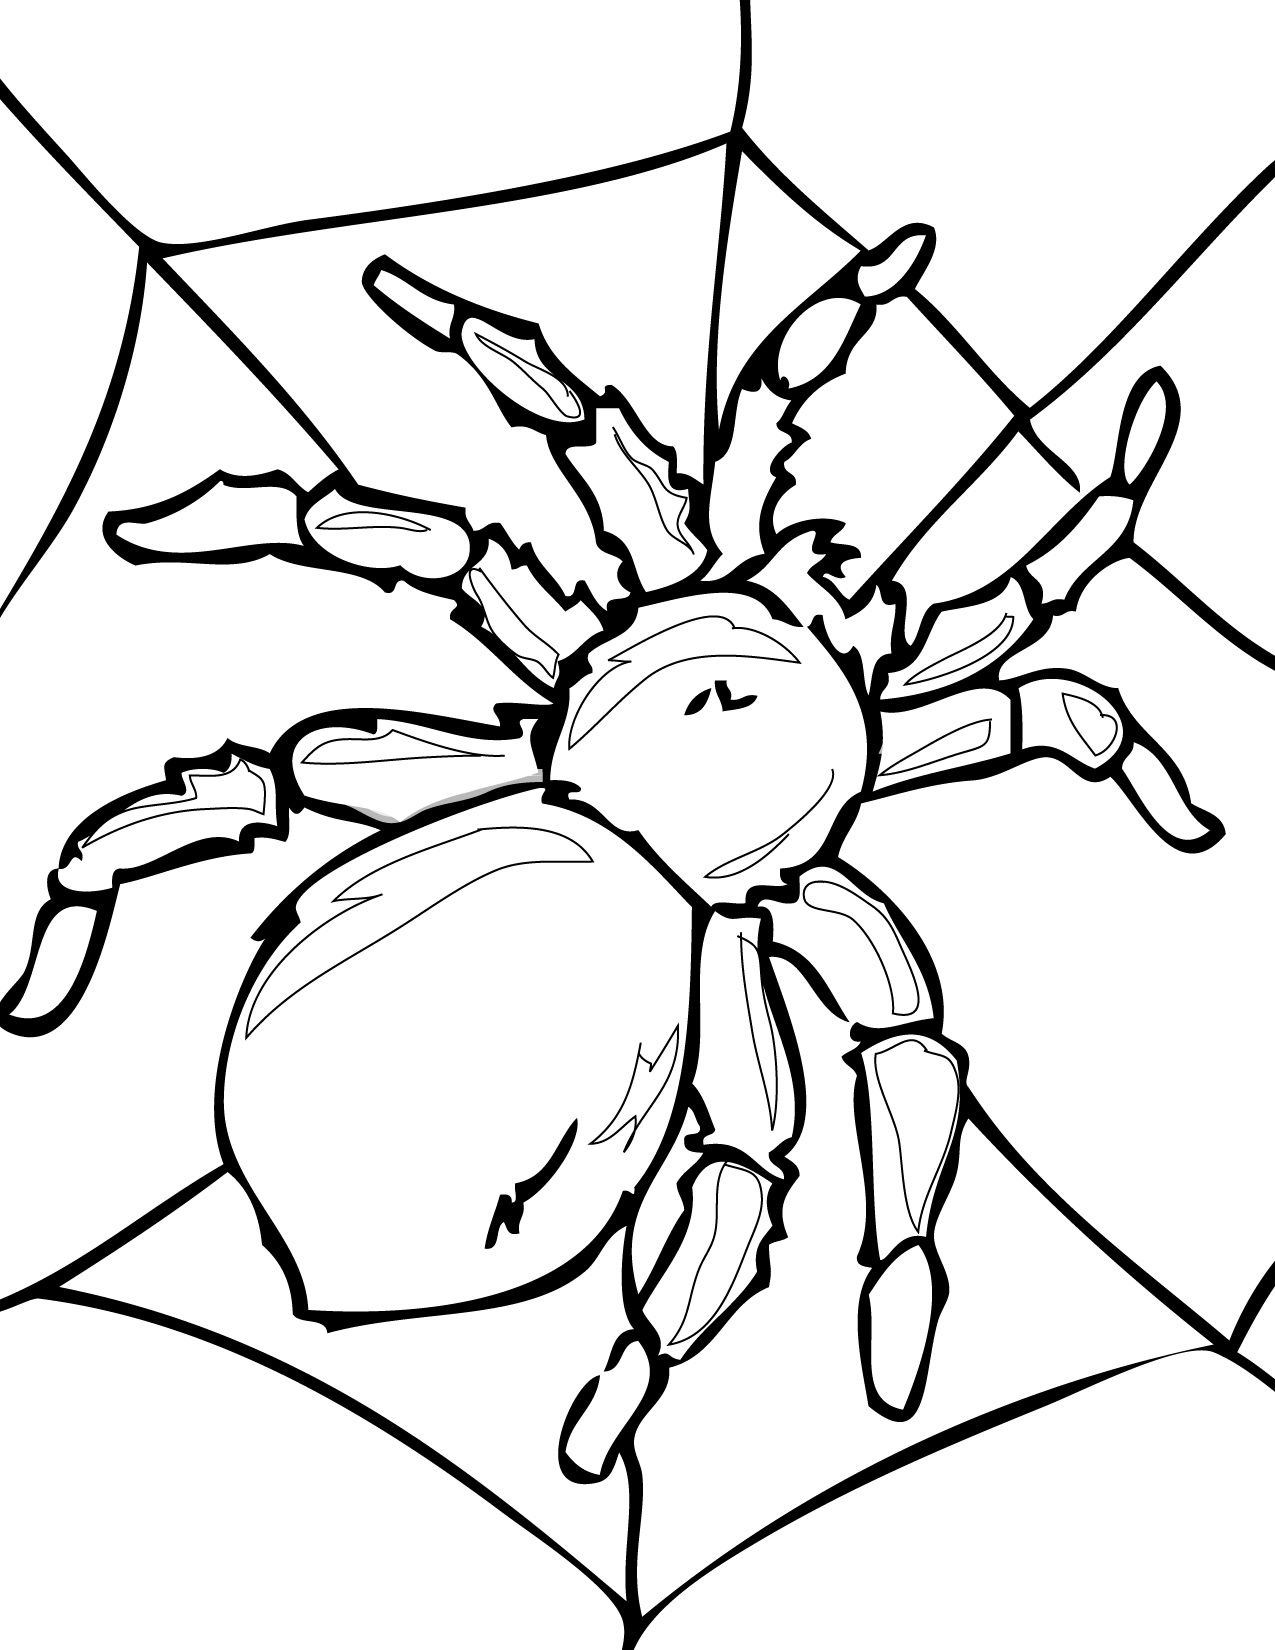 Pin By Marie Estep On Coloring Pages Spider Coloring Page Bug